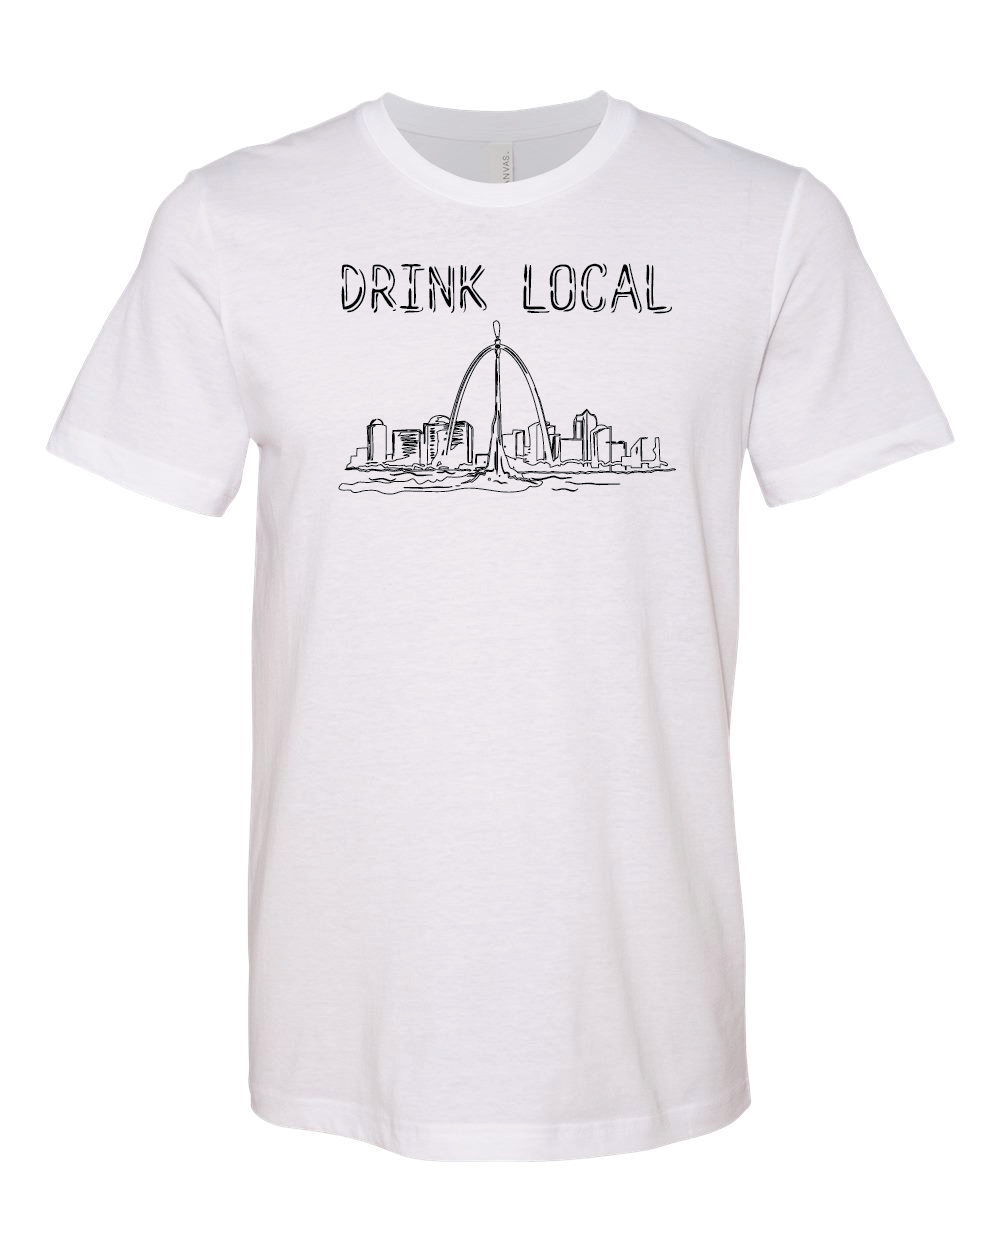 Drink Local - Tee